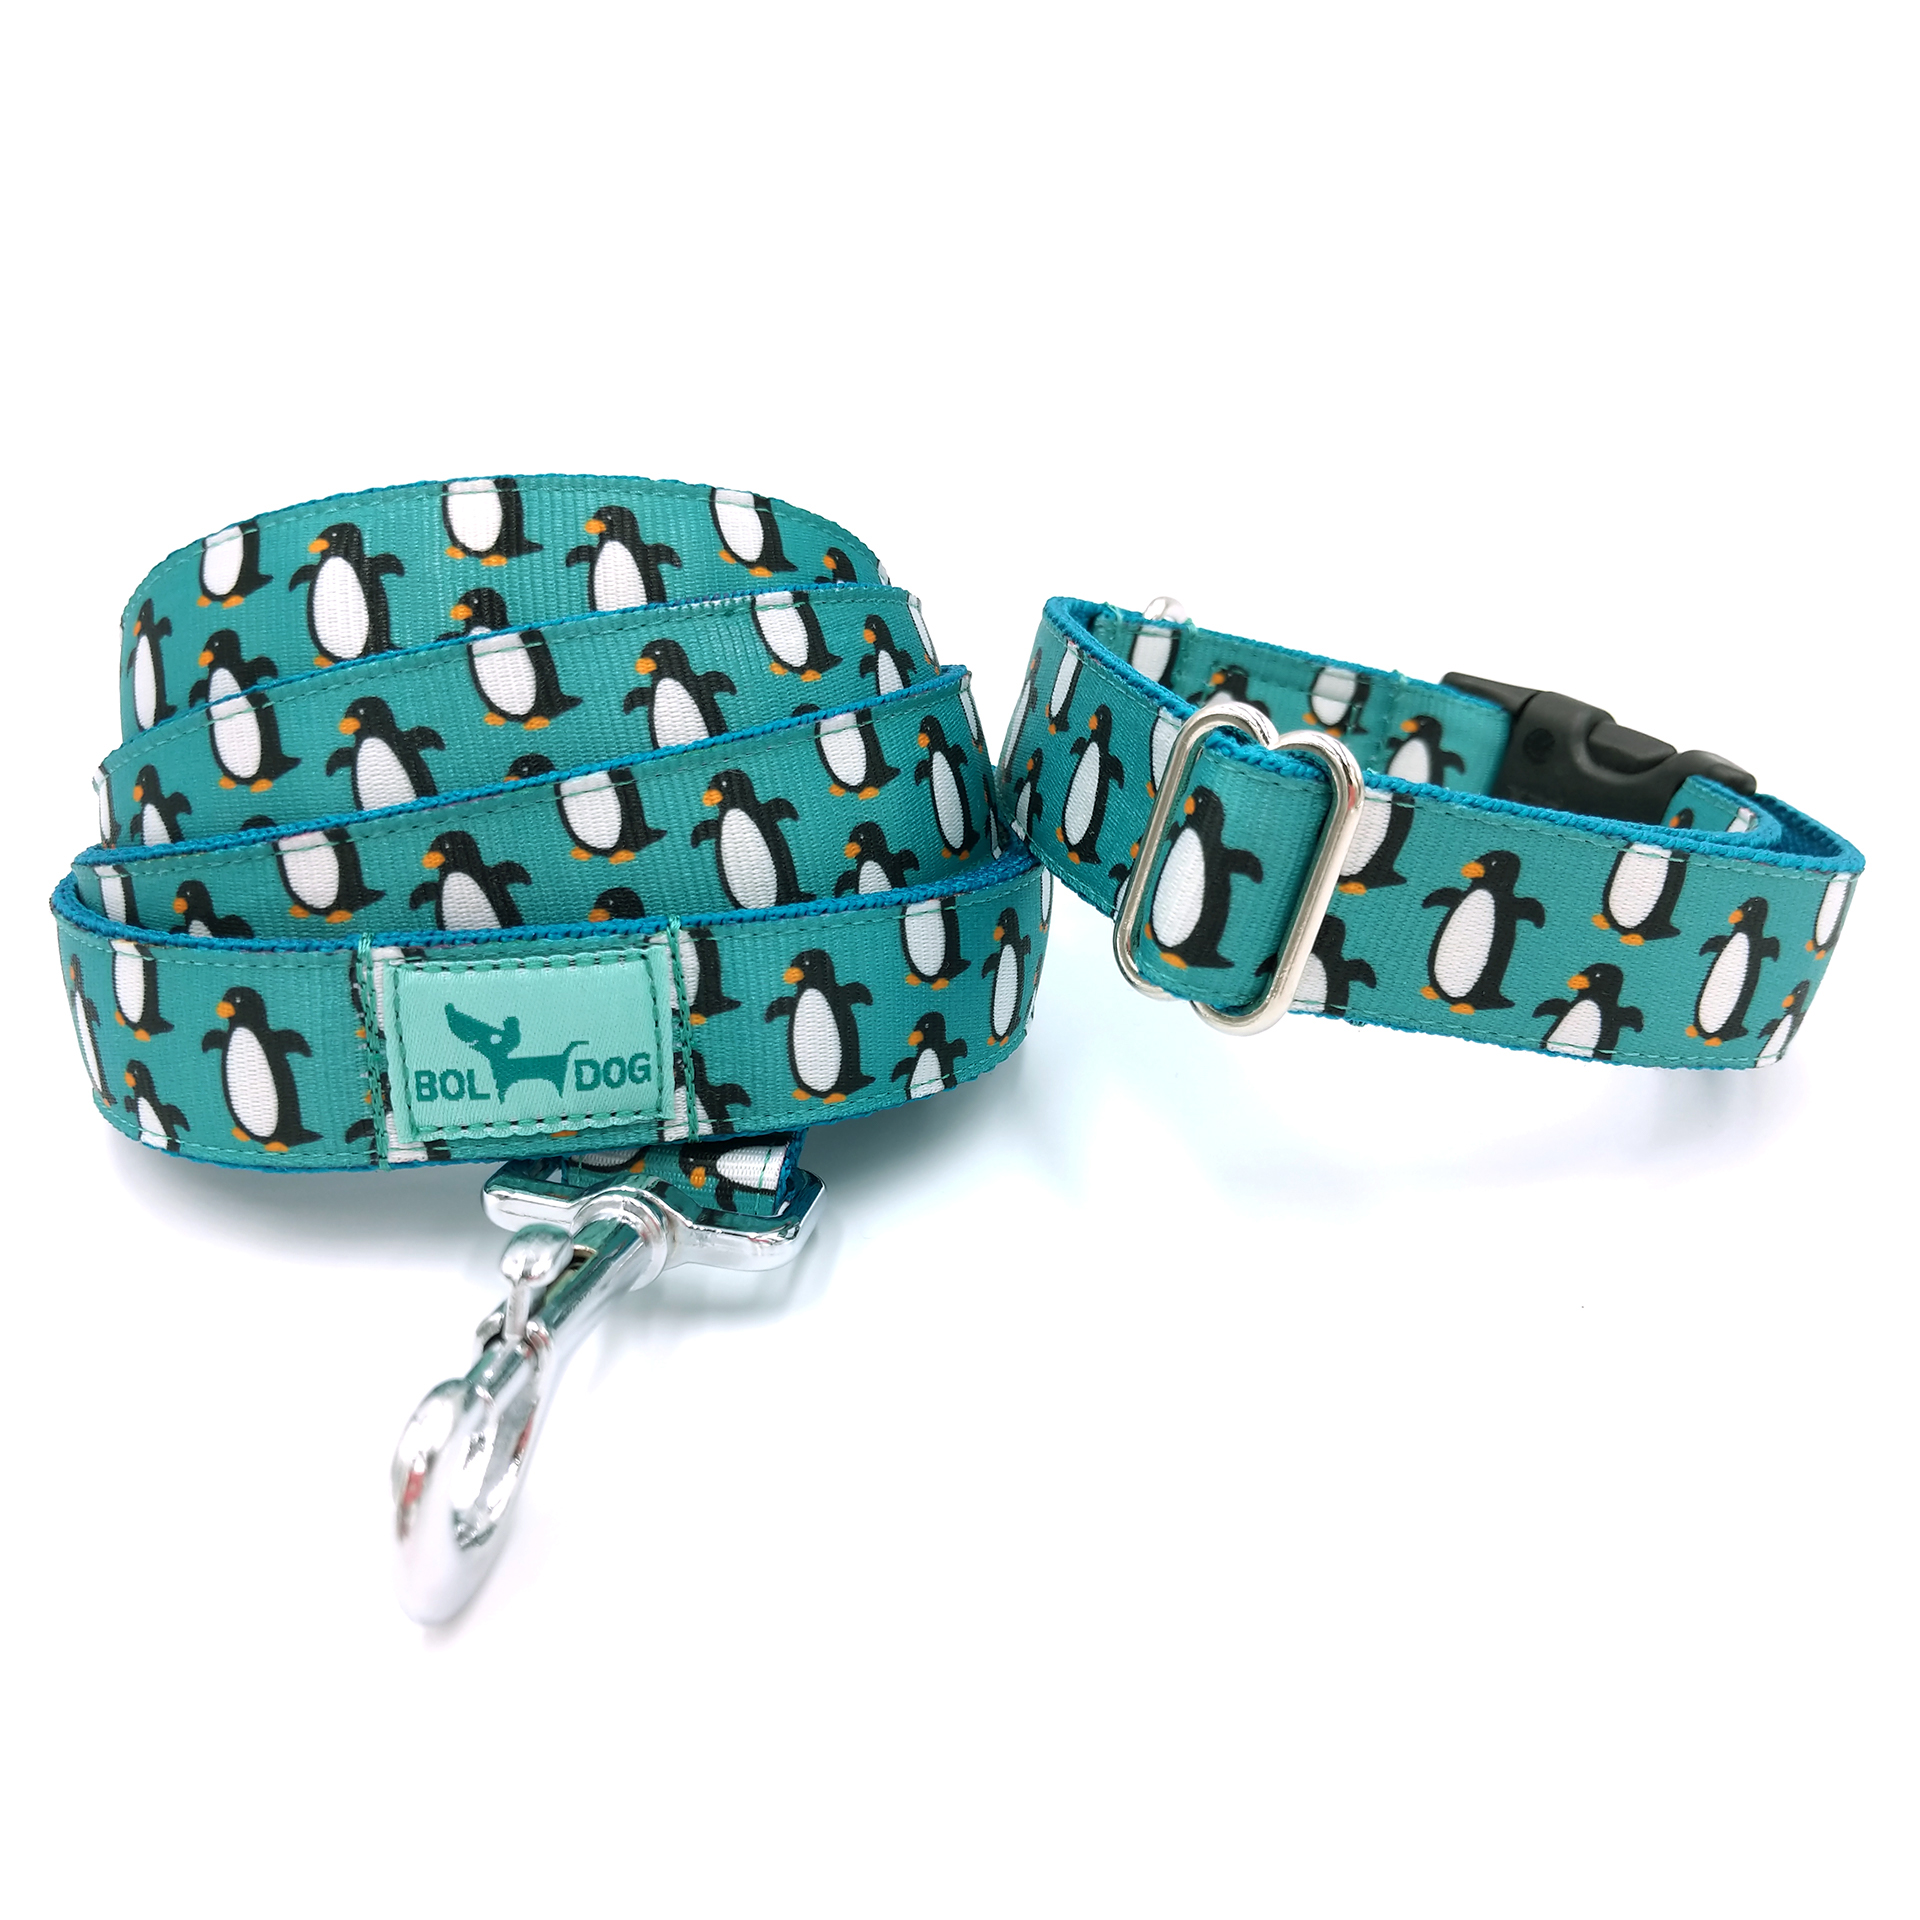 Penguin patterned dog collar and leash